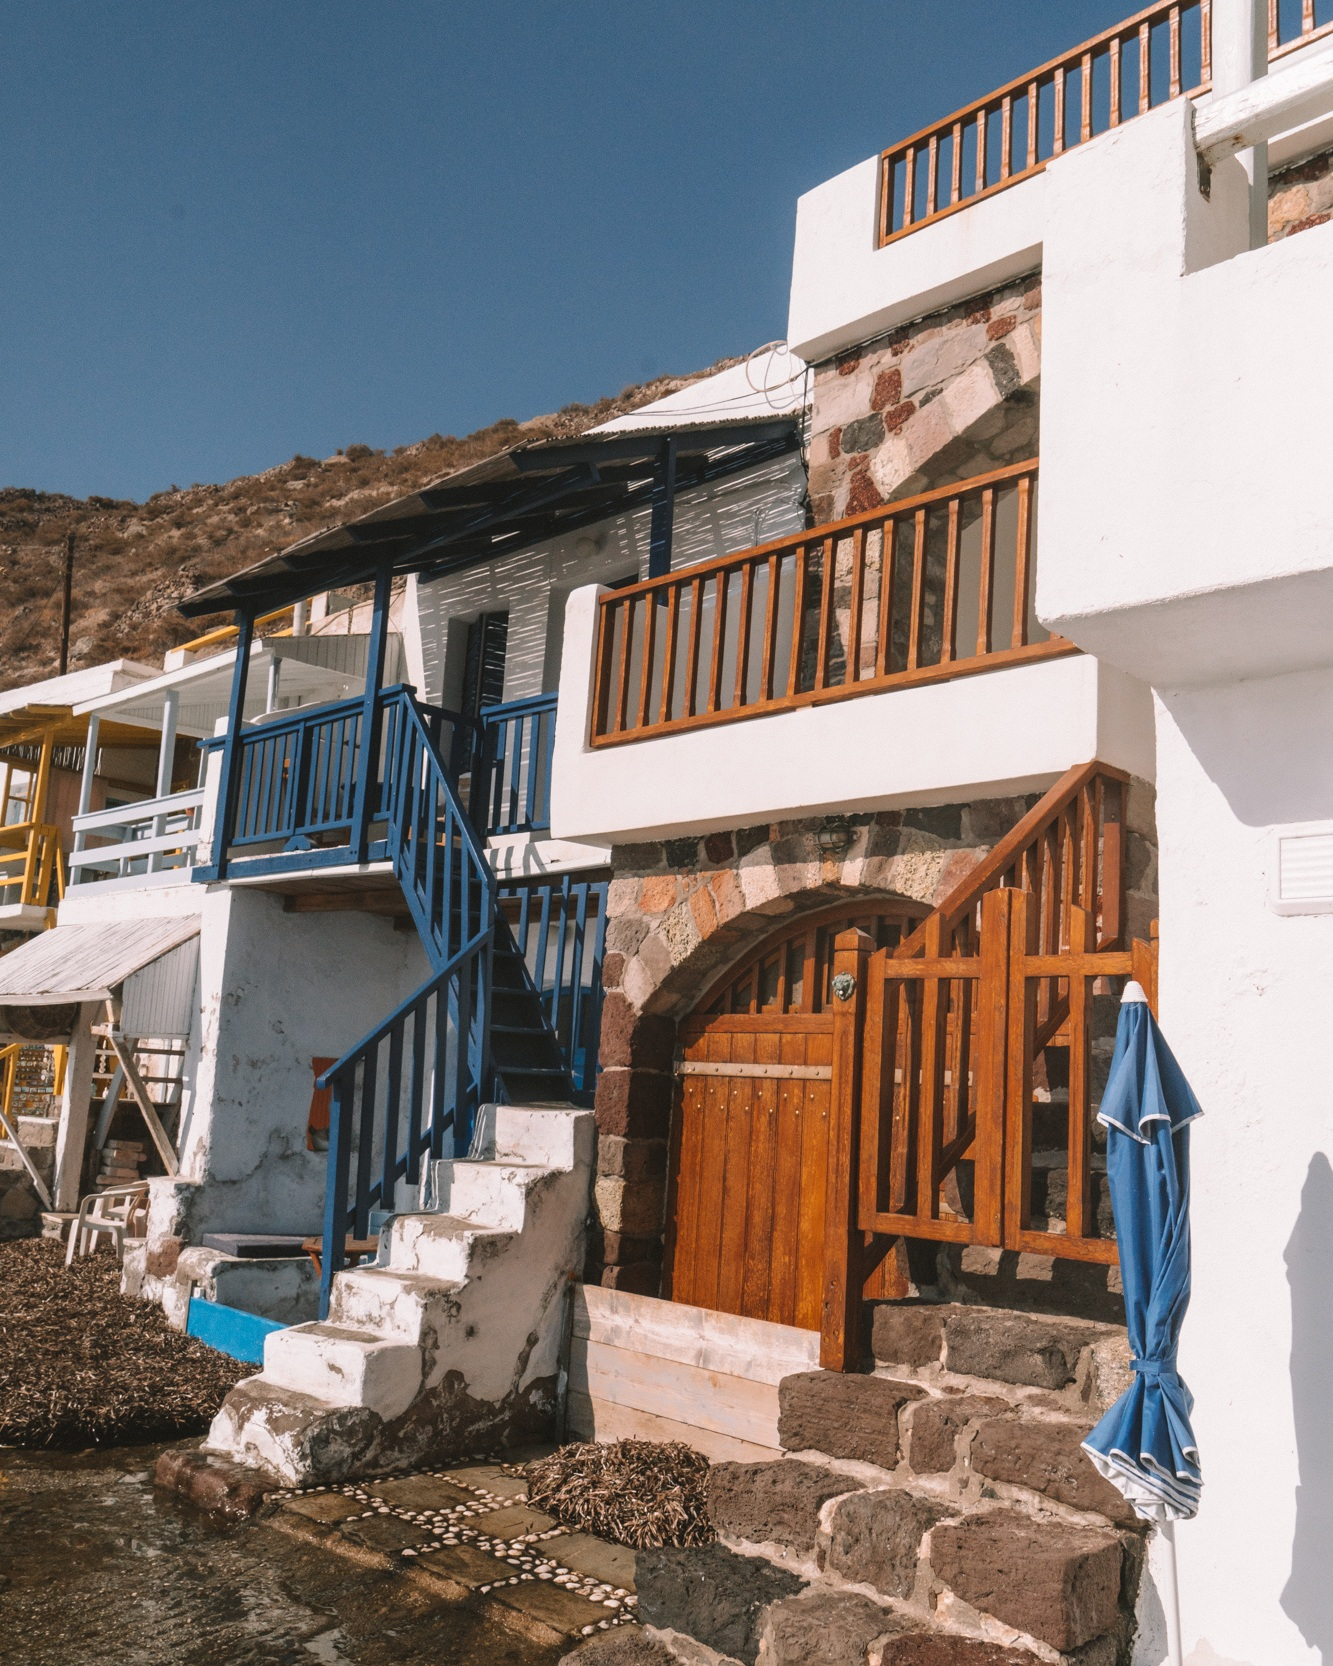 Colourful railings and stone steps of houses in Klima Fishing Village, Milos